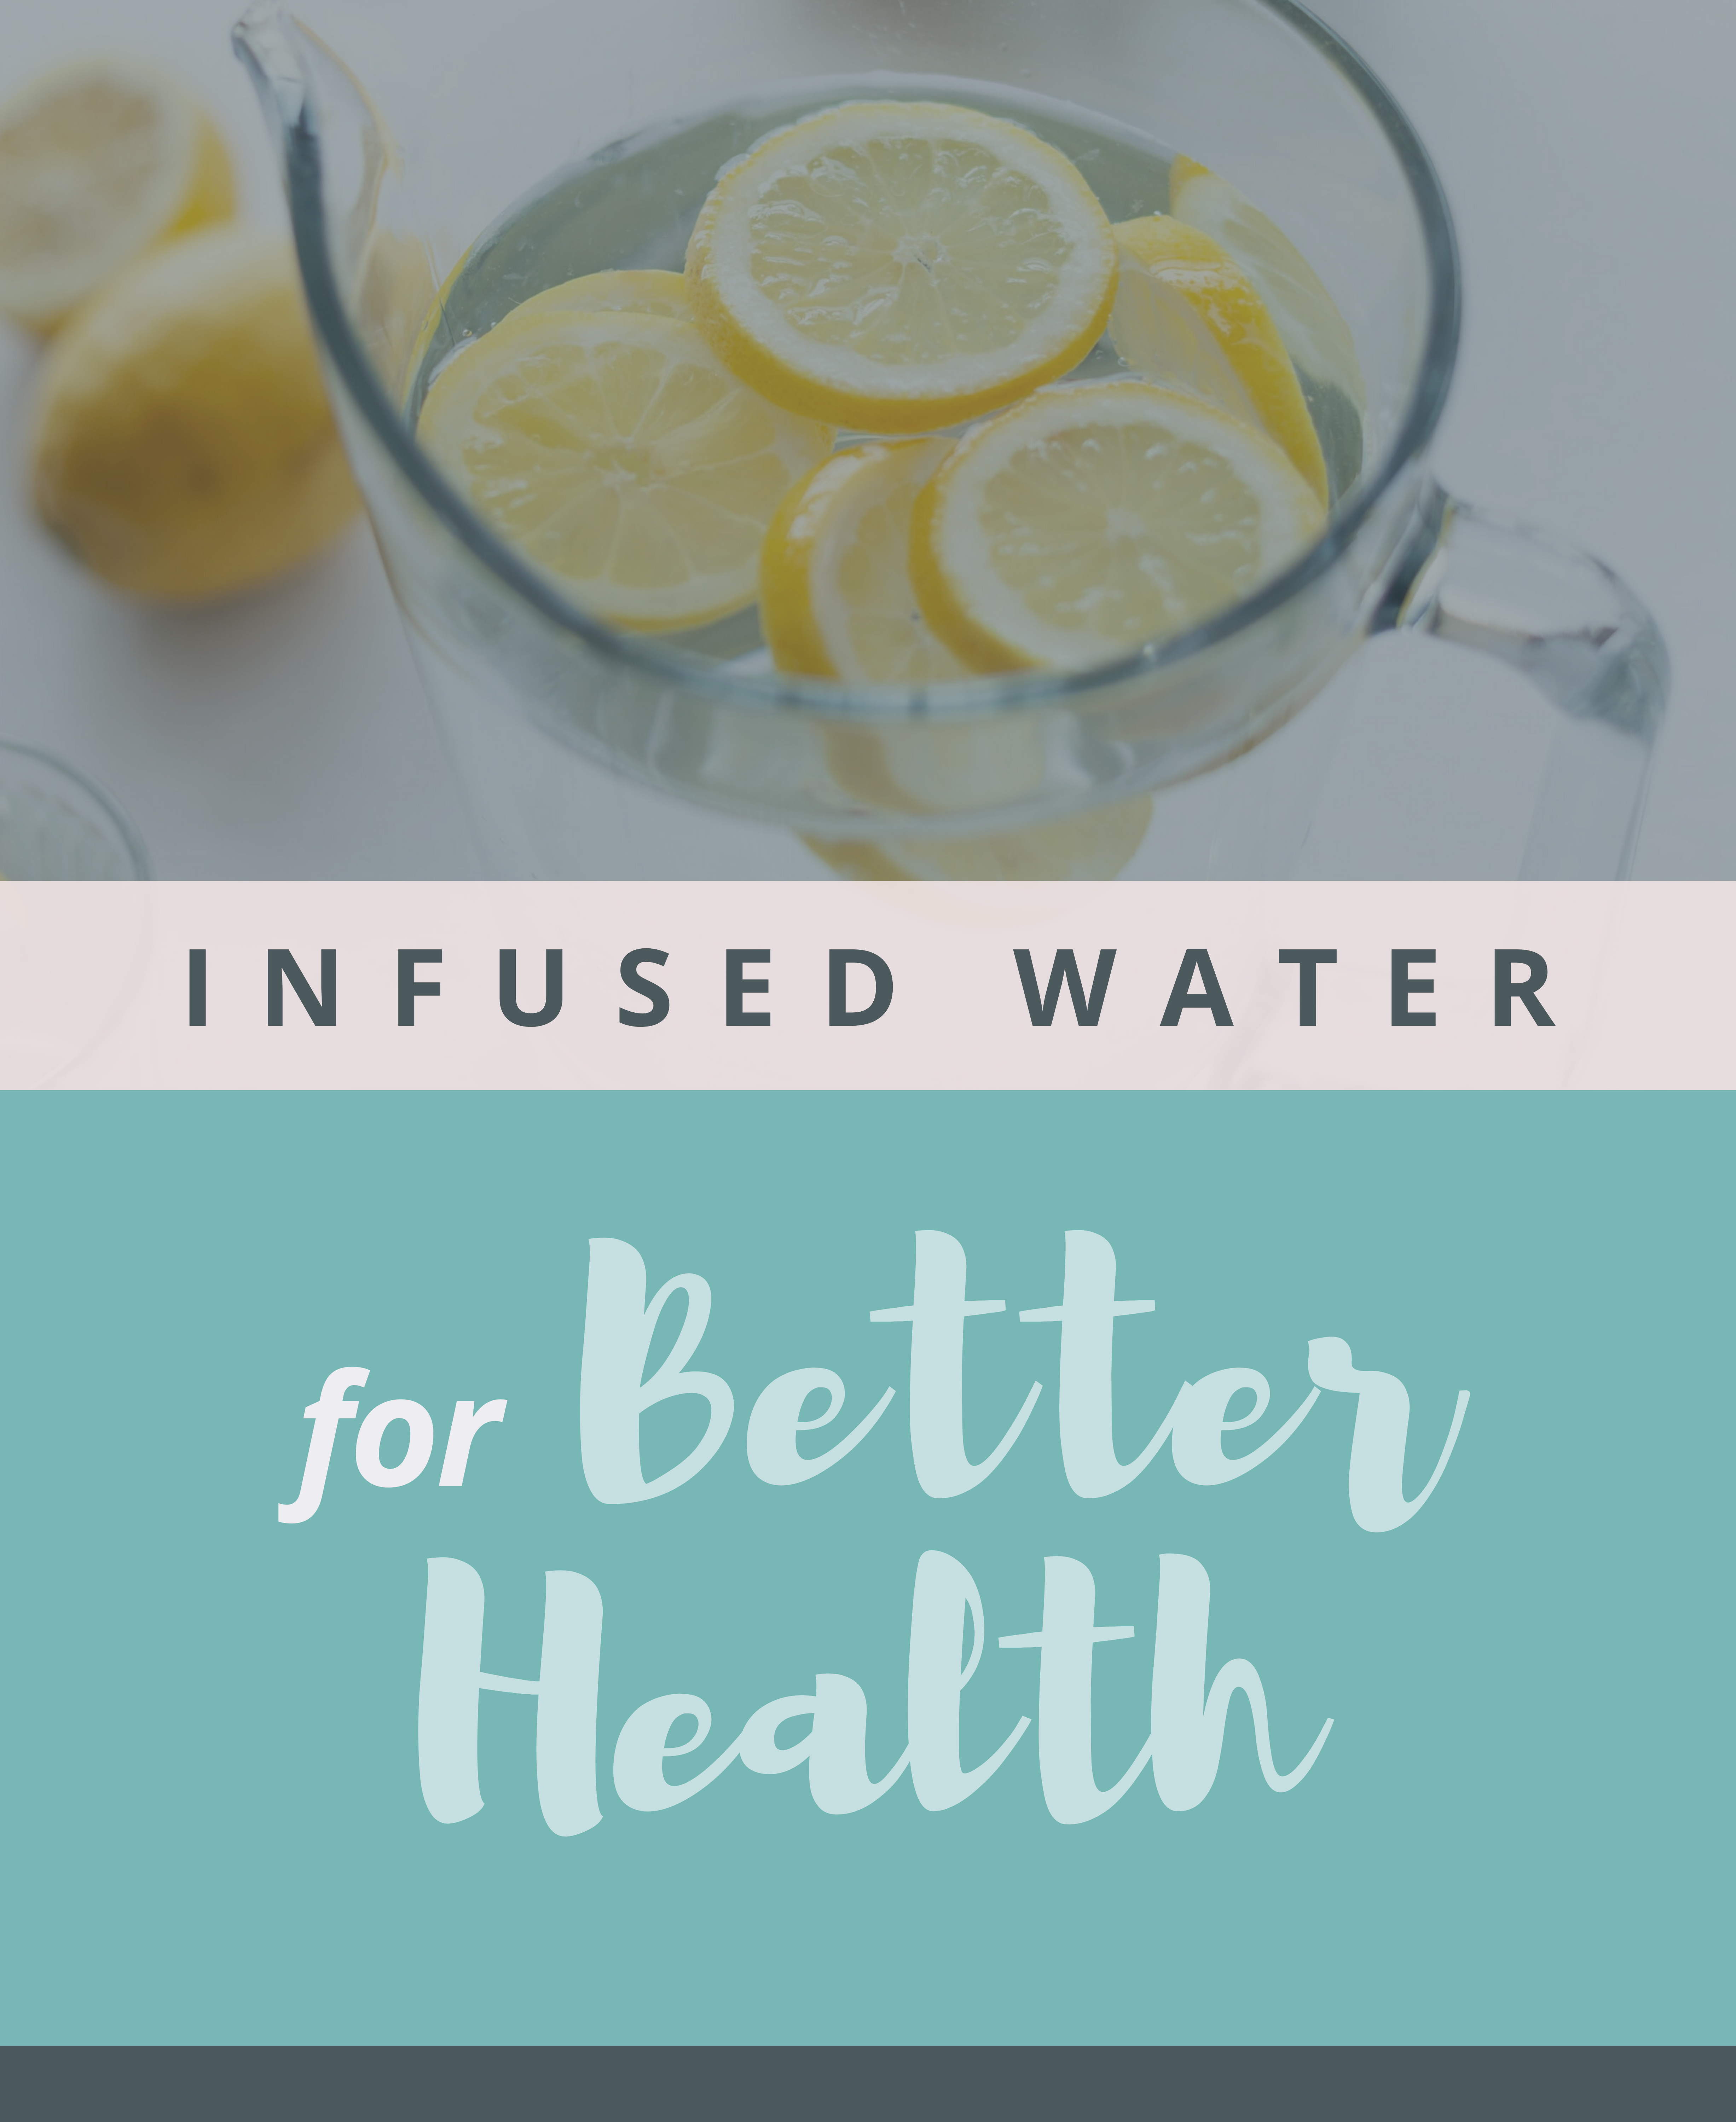 Infused Water for Better Health